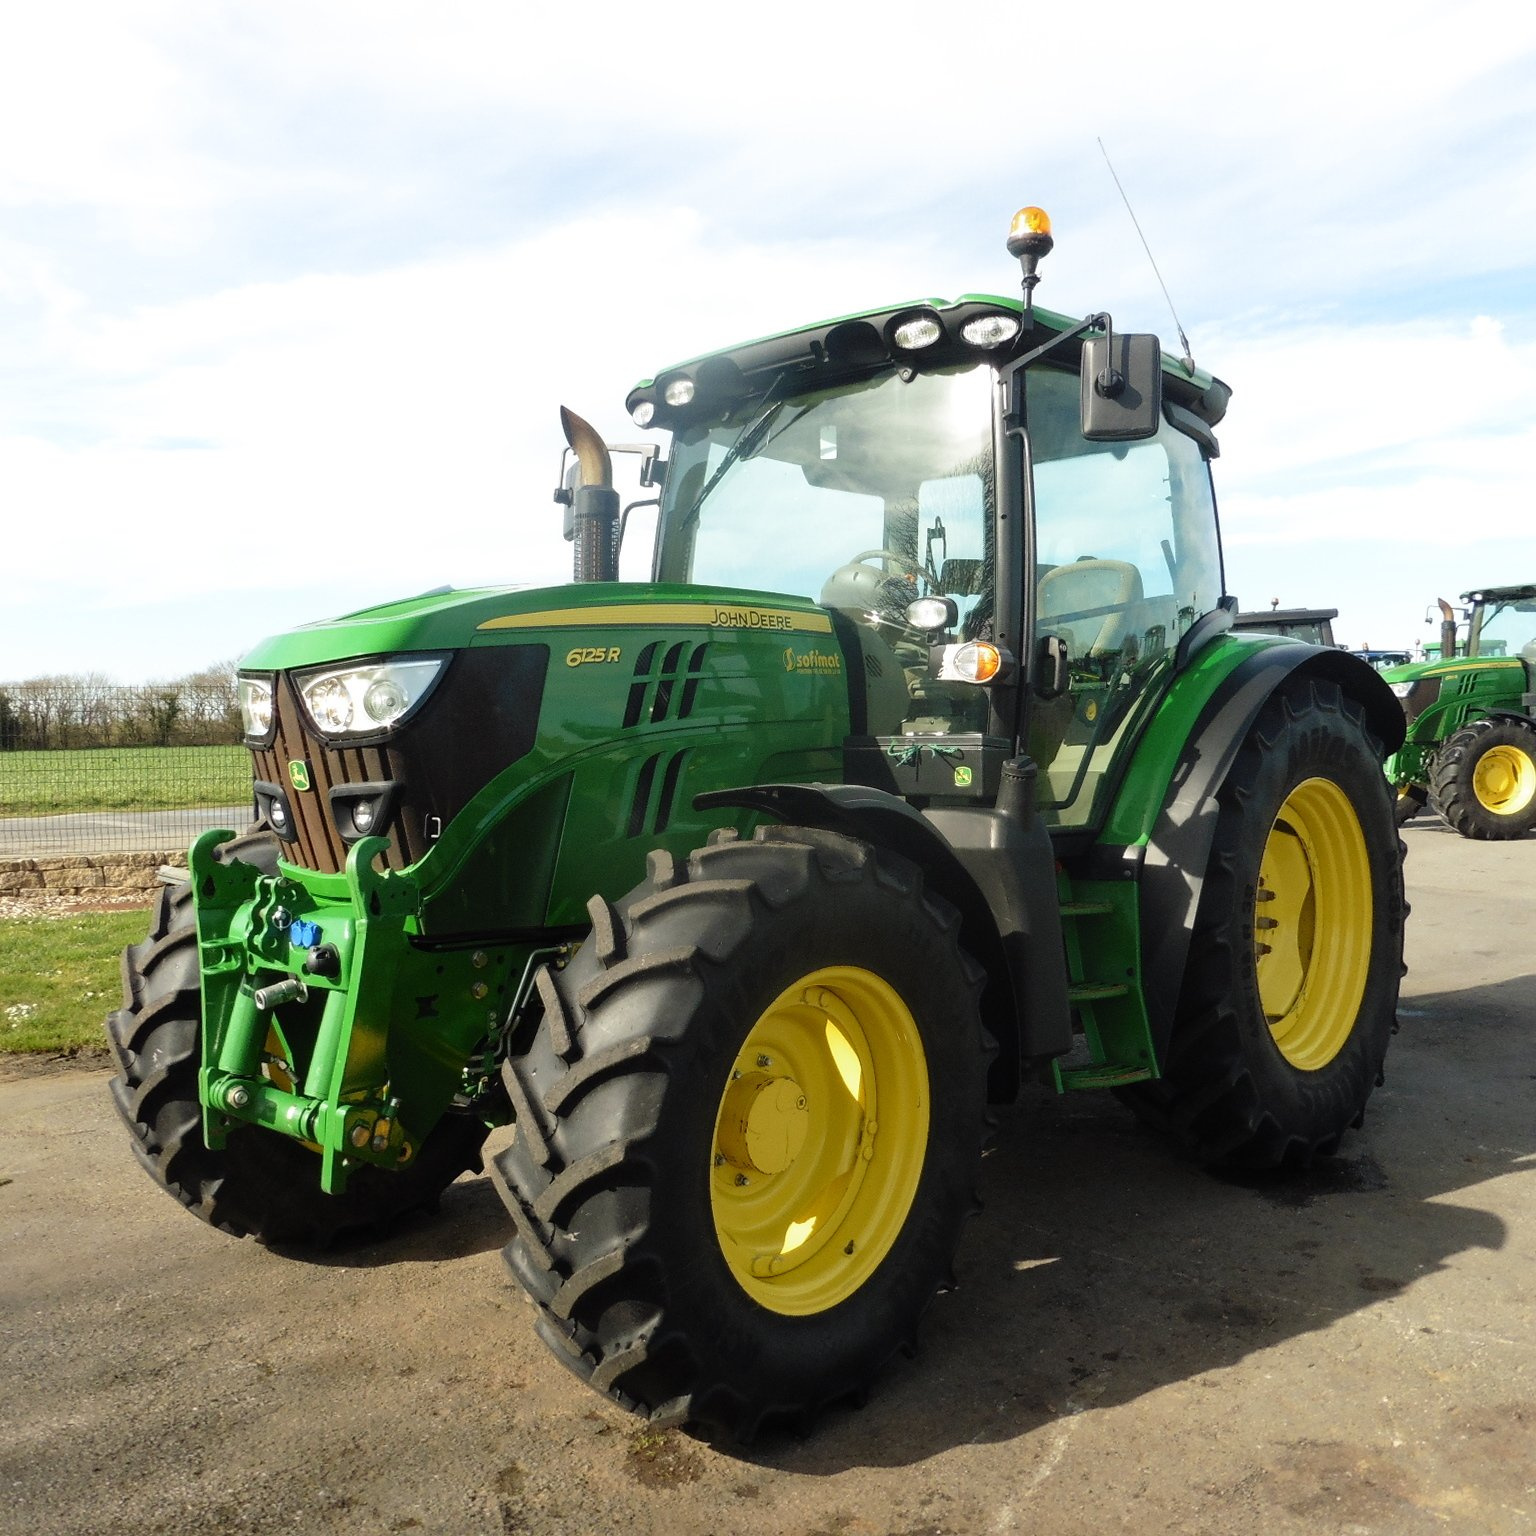 tracteur agricole john deere 6125r vendre sur sofimat. Black Bedroom Furniture Sets. Home Design Ideas